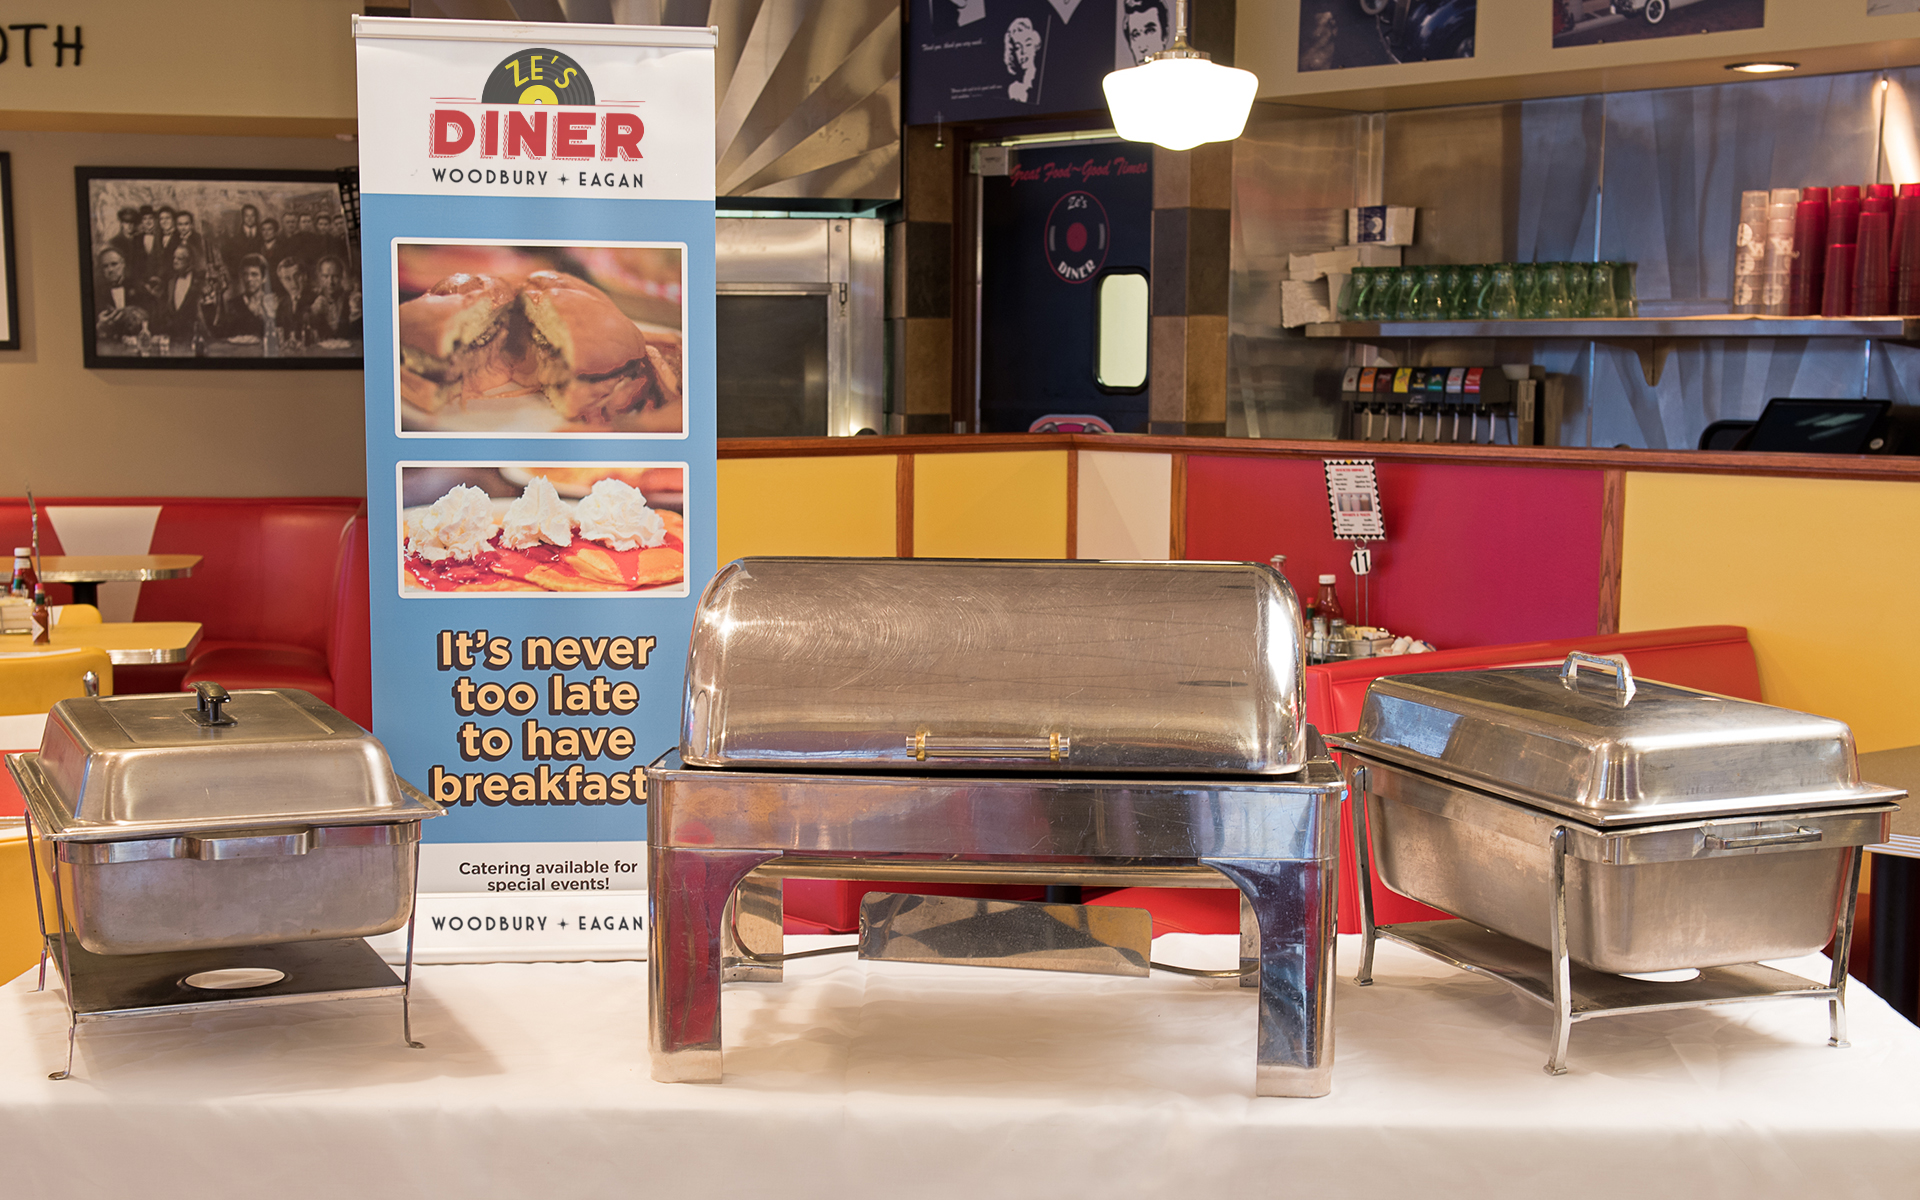 Ze's Diner Does Catering